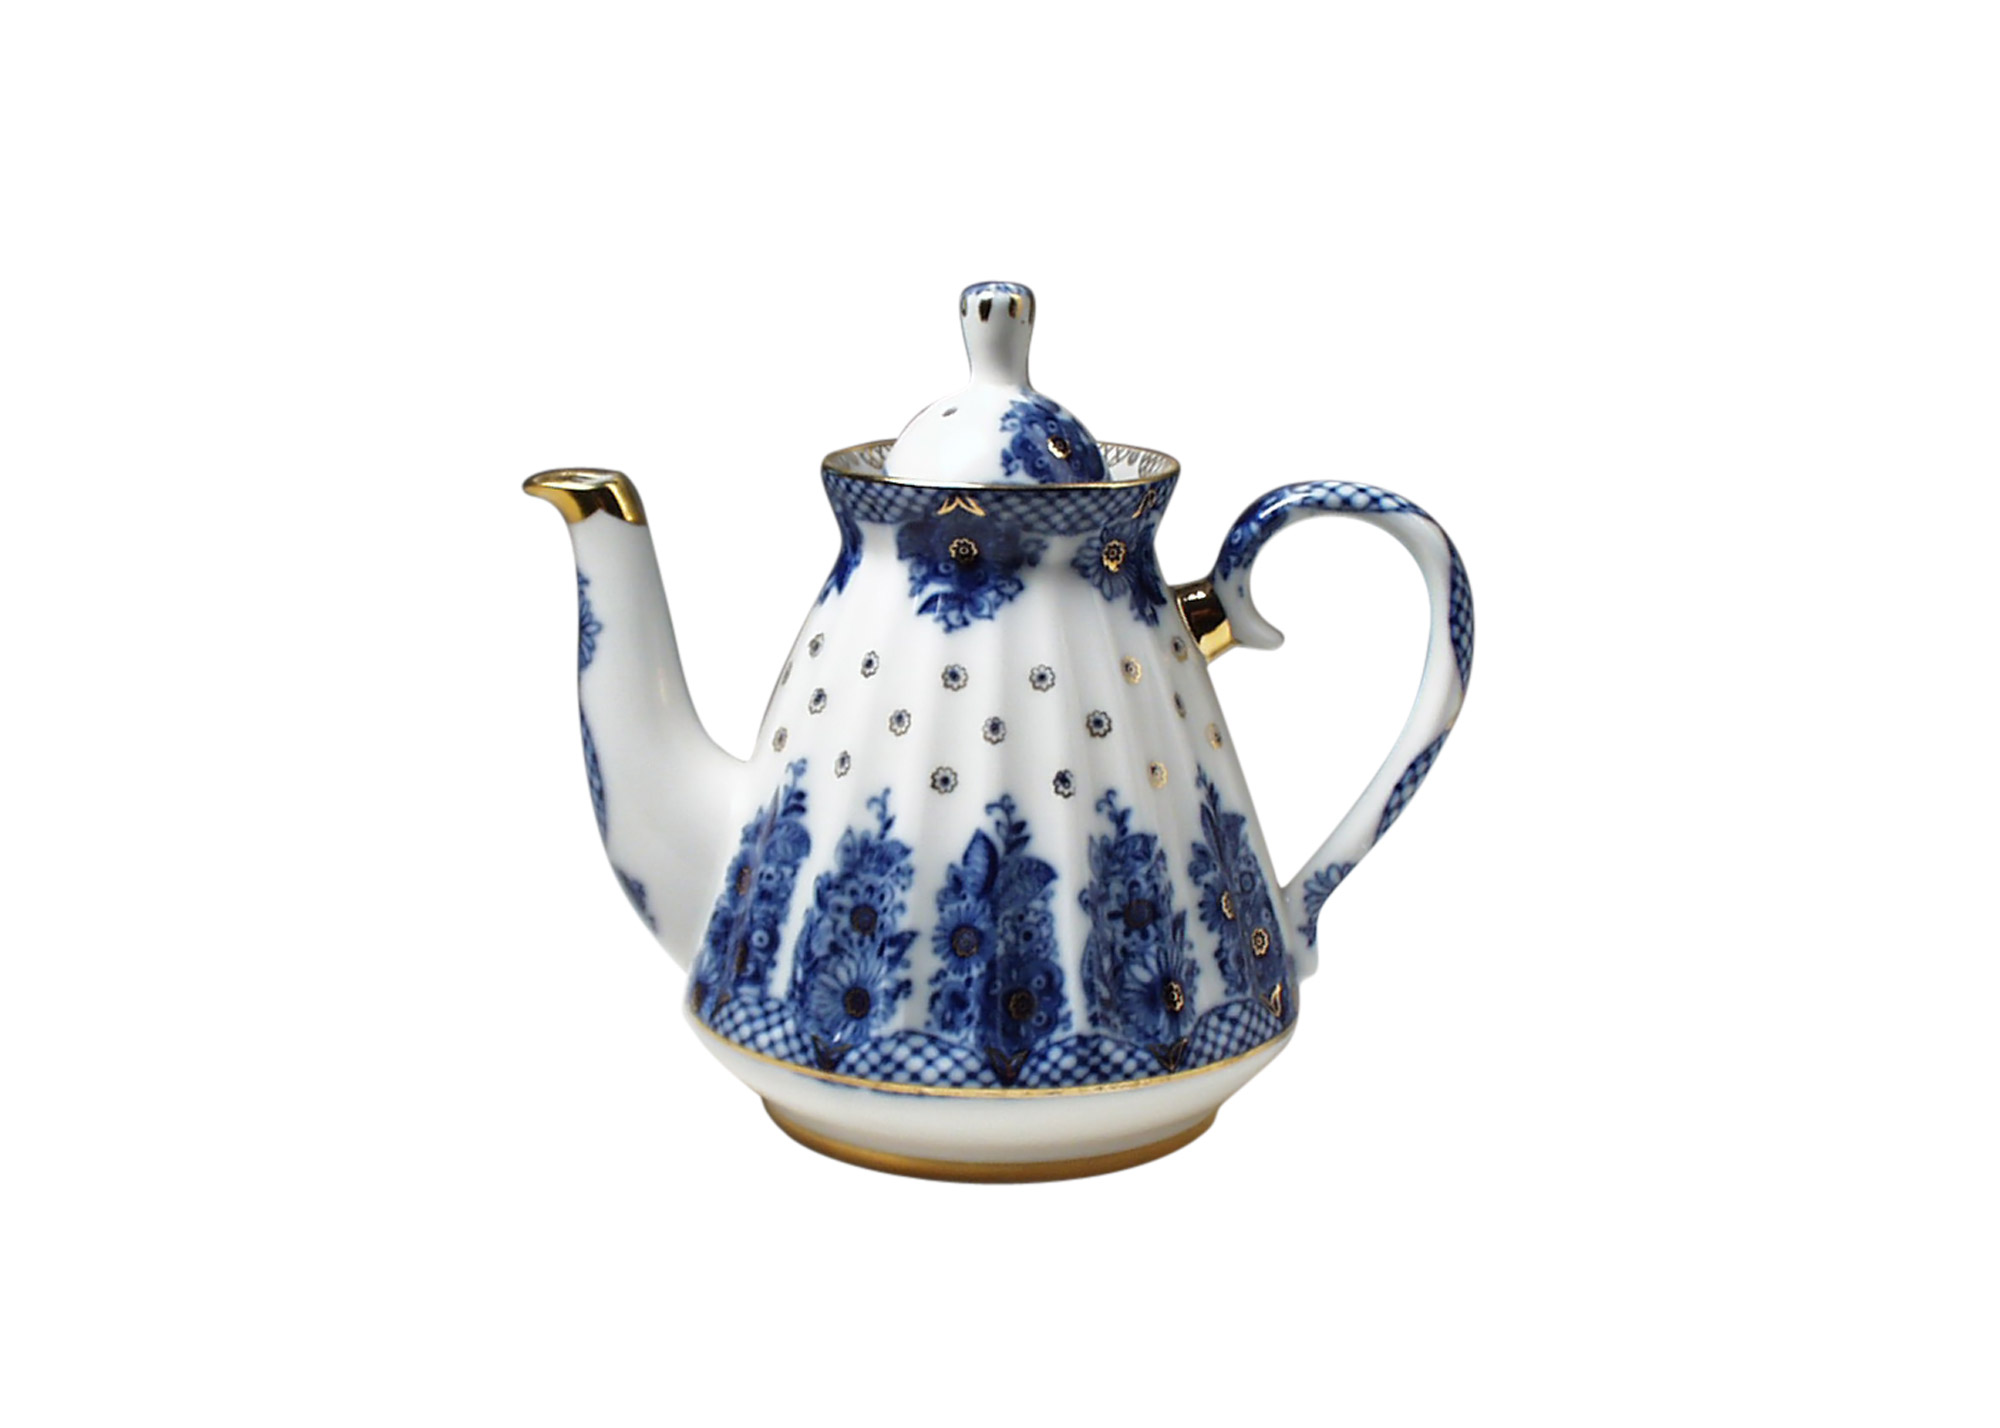 Buy Brides Maid Porcelain Teapot at GoldenCockerel.com